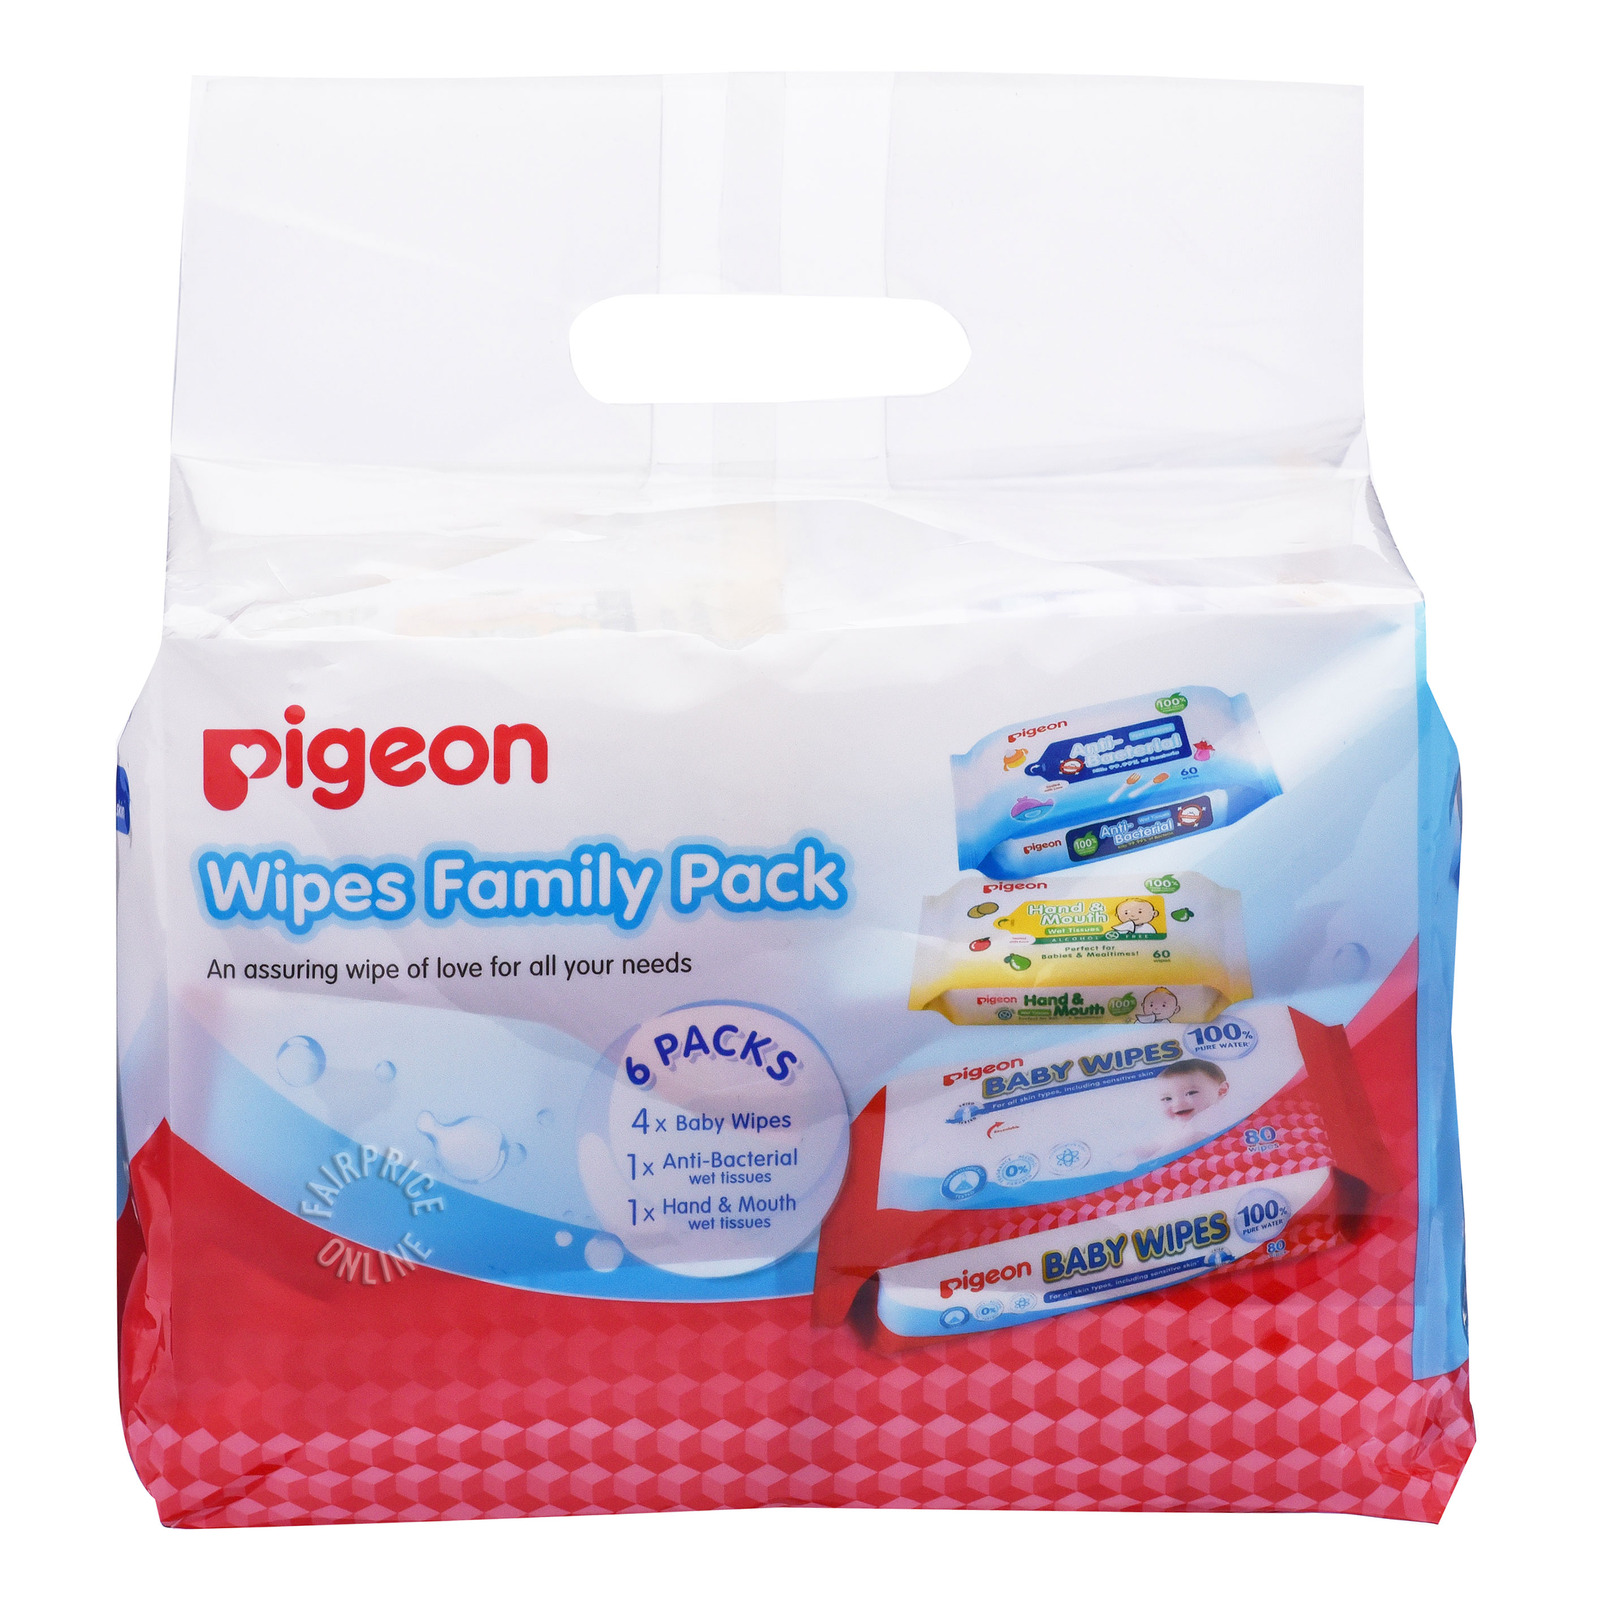 Pigeon Wipes Family Pack